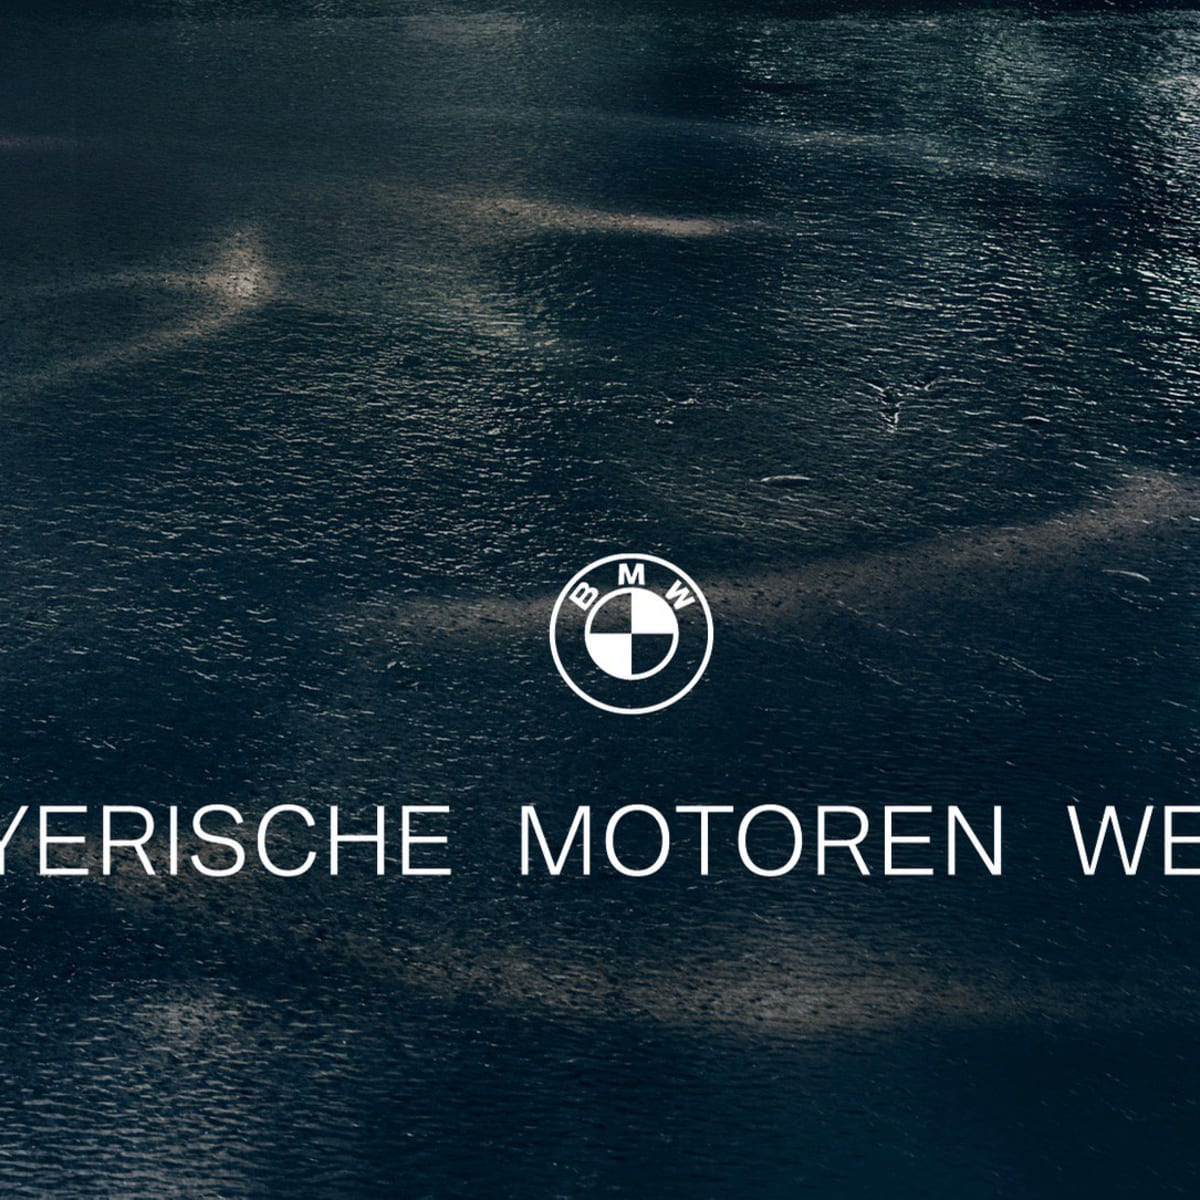 Bmw Unveils New Black And White Logo For Exclusive Models Caradvice